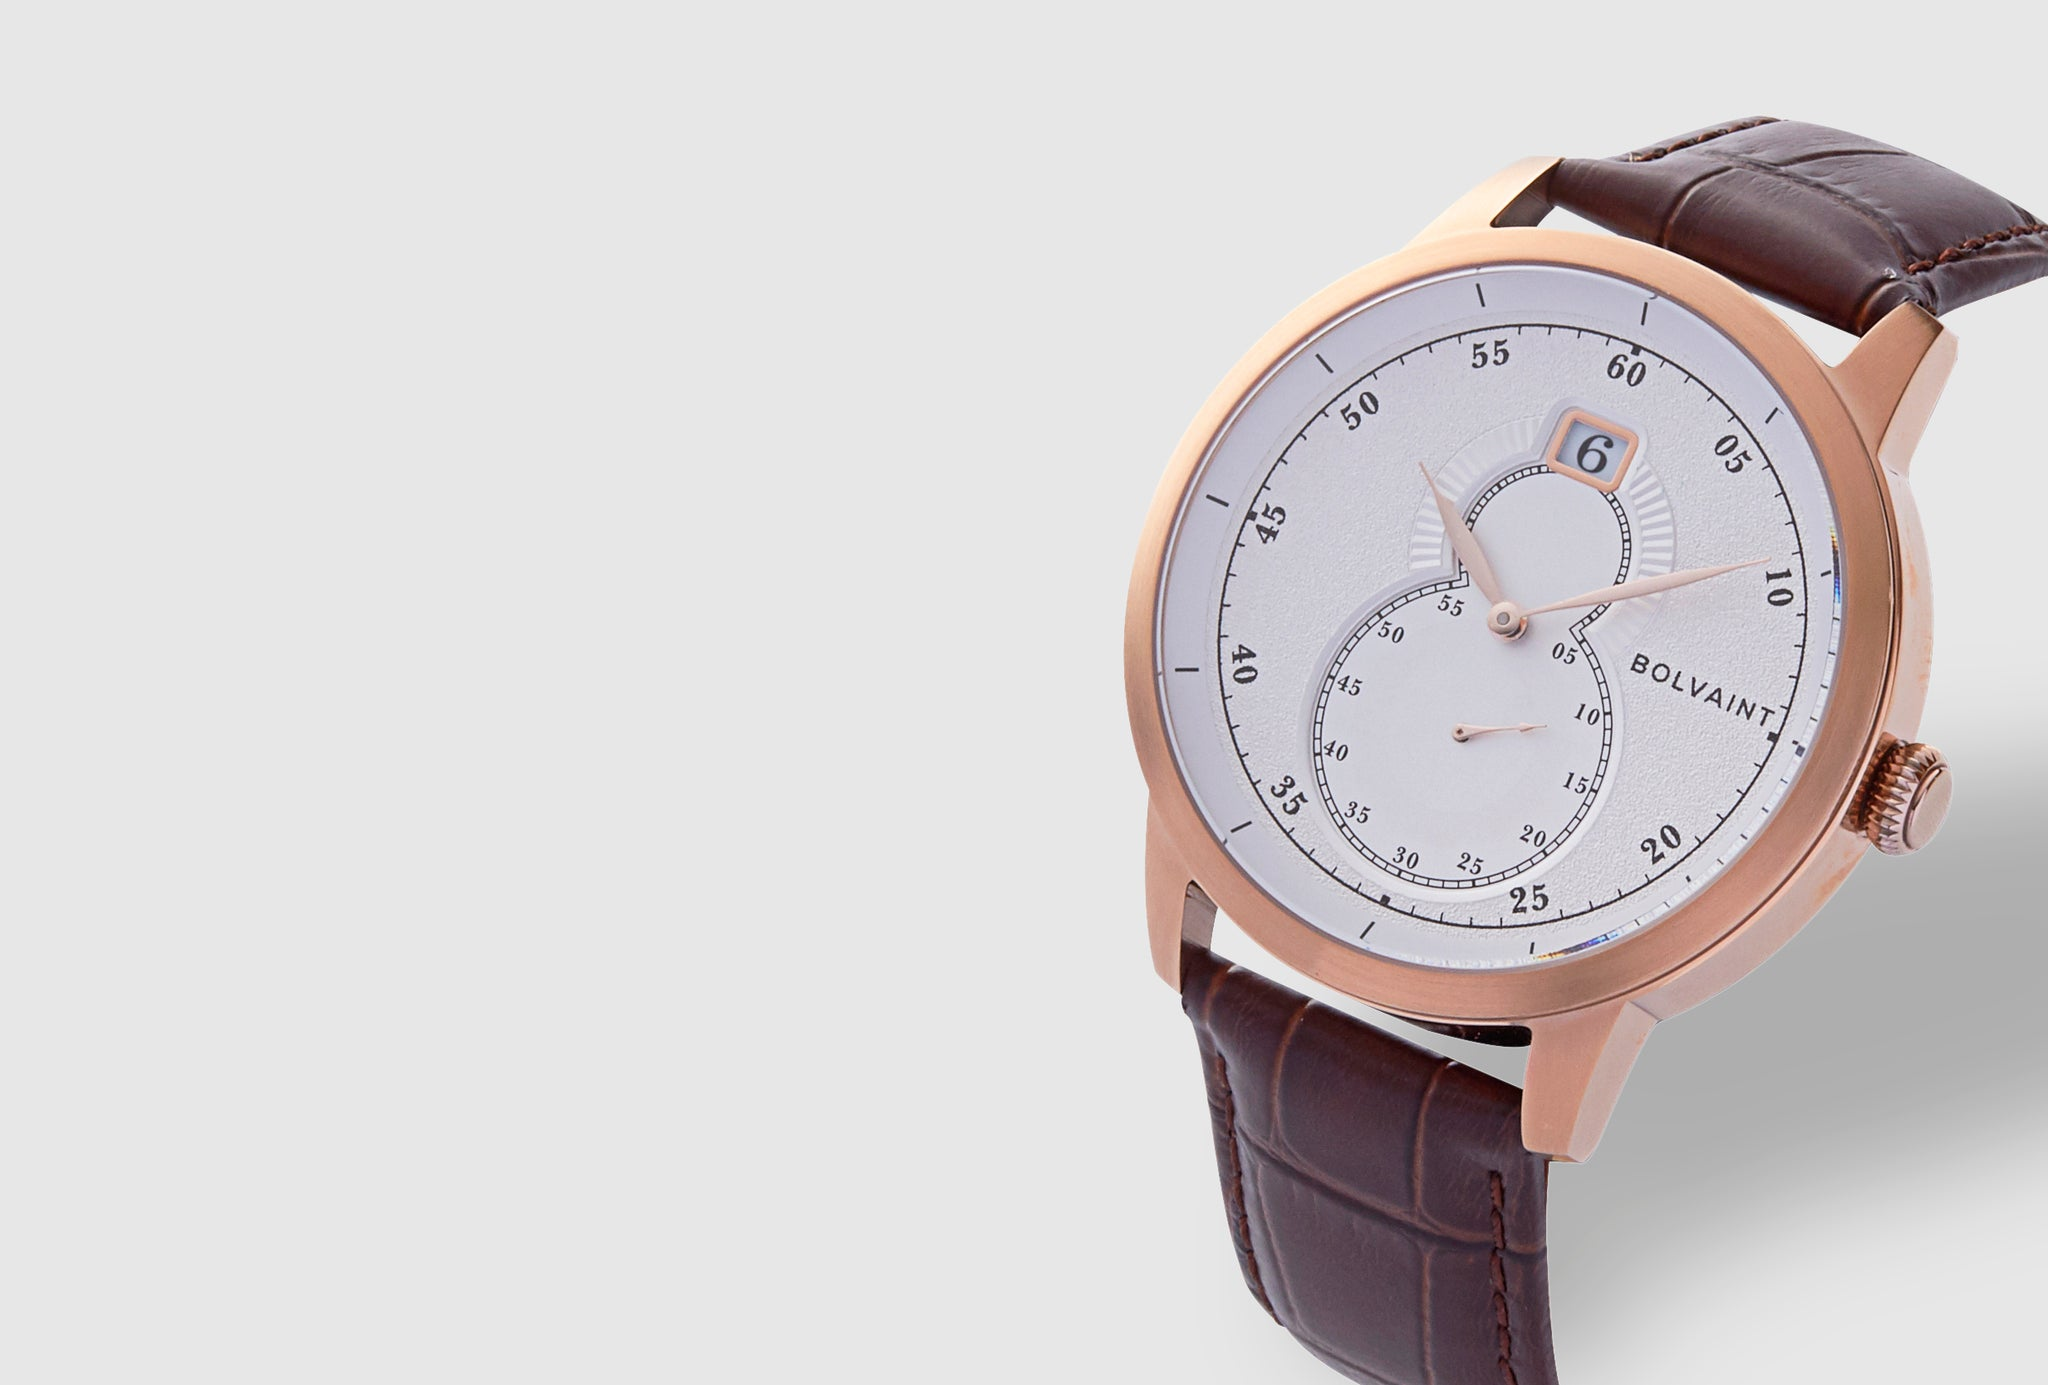 The Bolvaint Mallory Blanc in Rose Gold